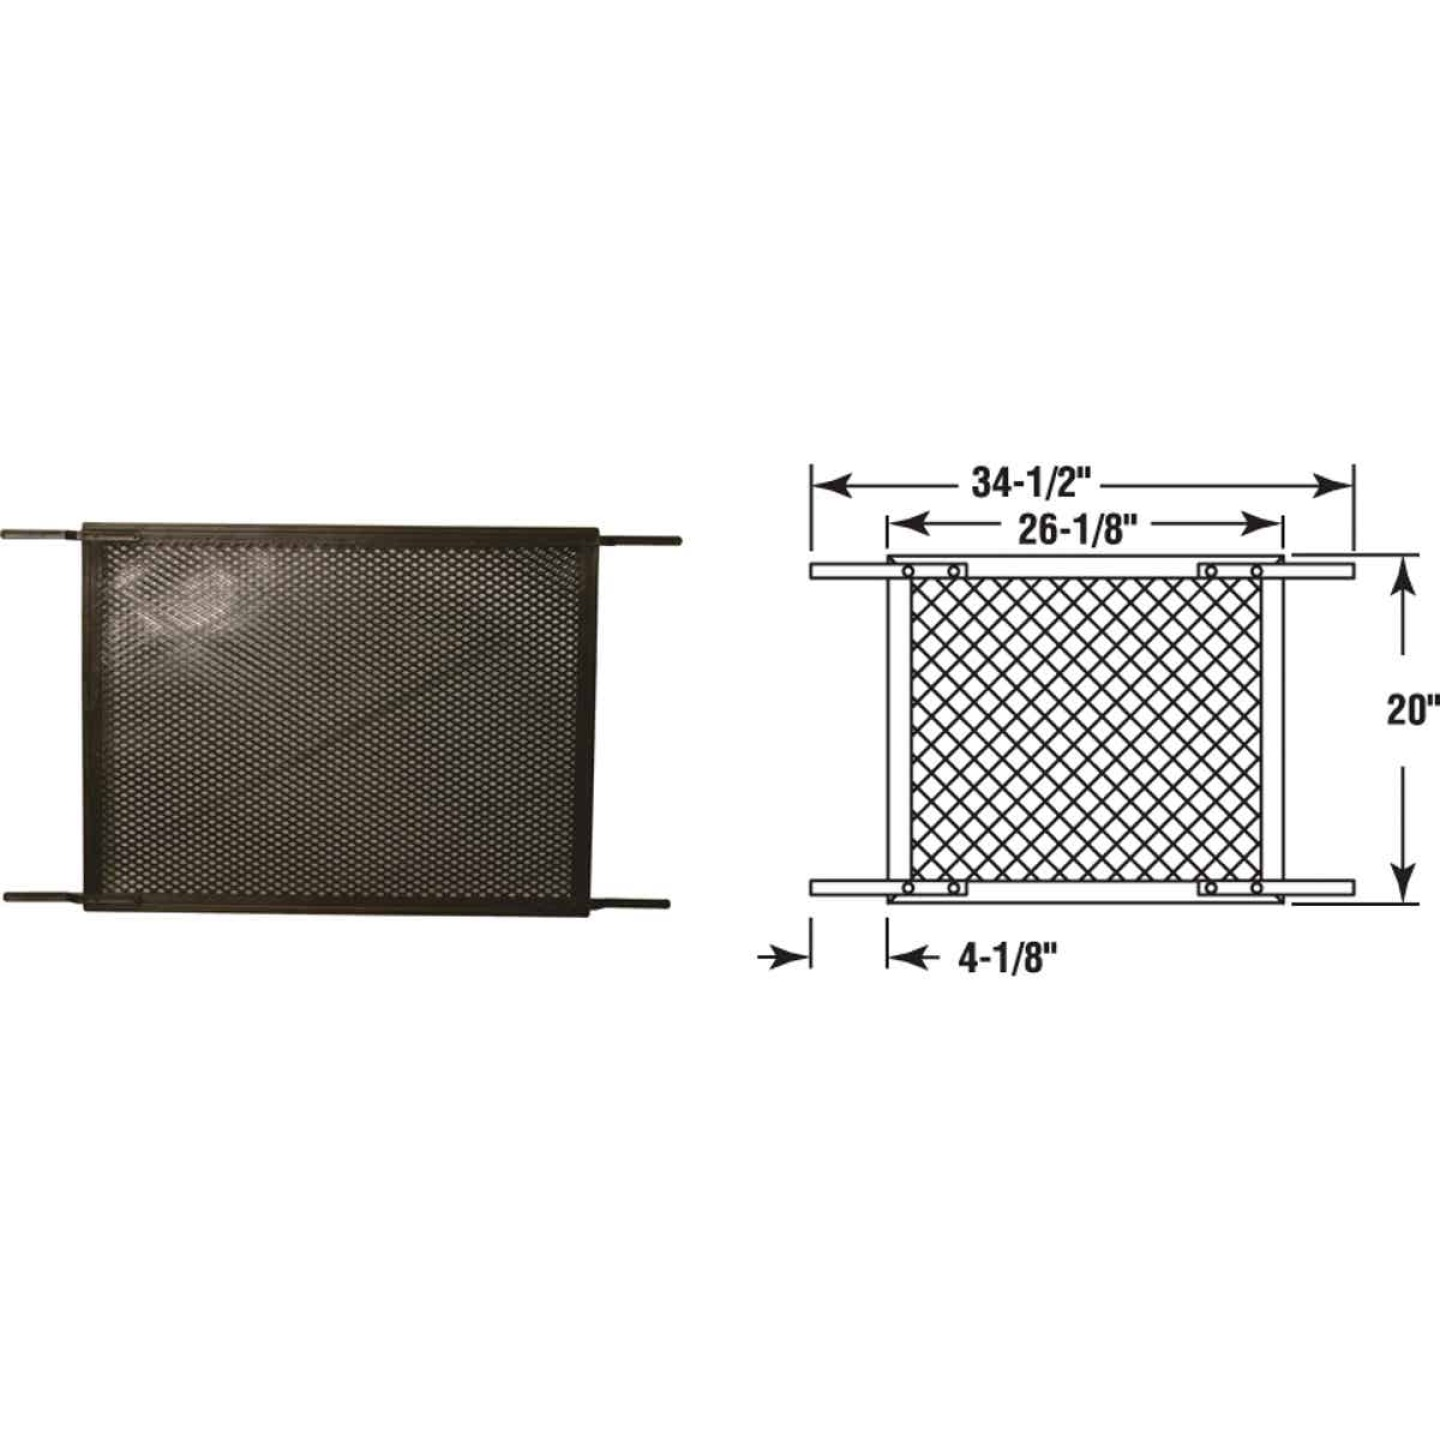 Prime-Line Make-2-Fit 34.5 In. x 20 In. Brown Plastic Door Grille for 36 In. Door Image 1